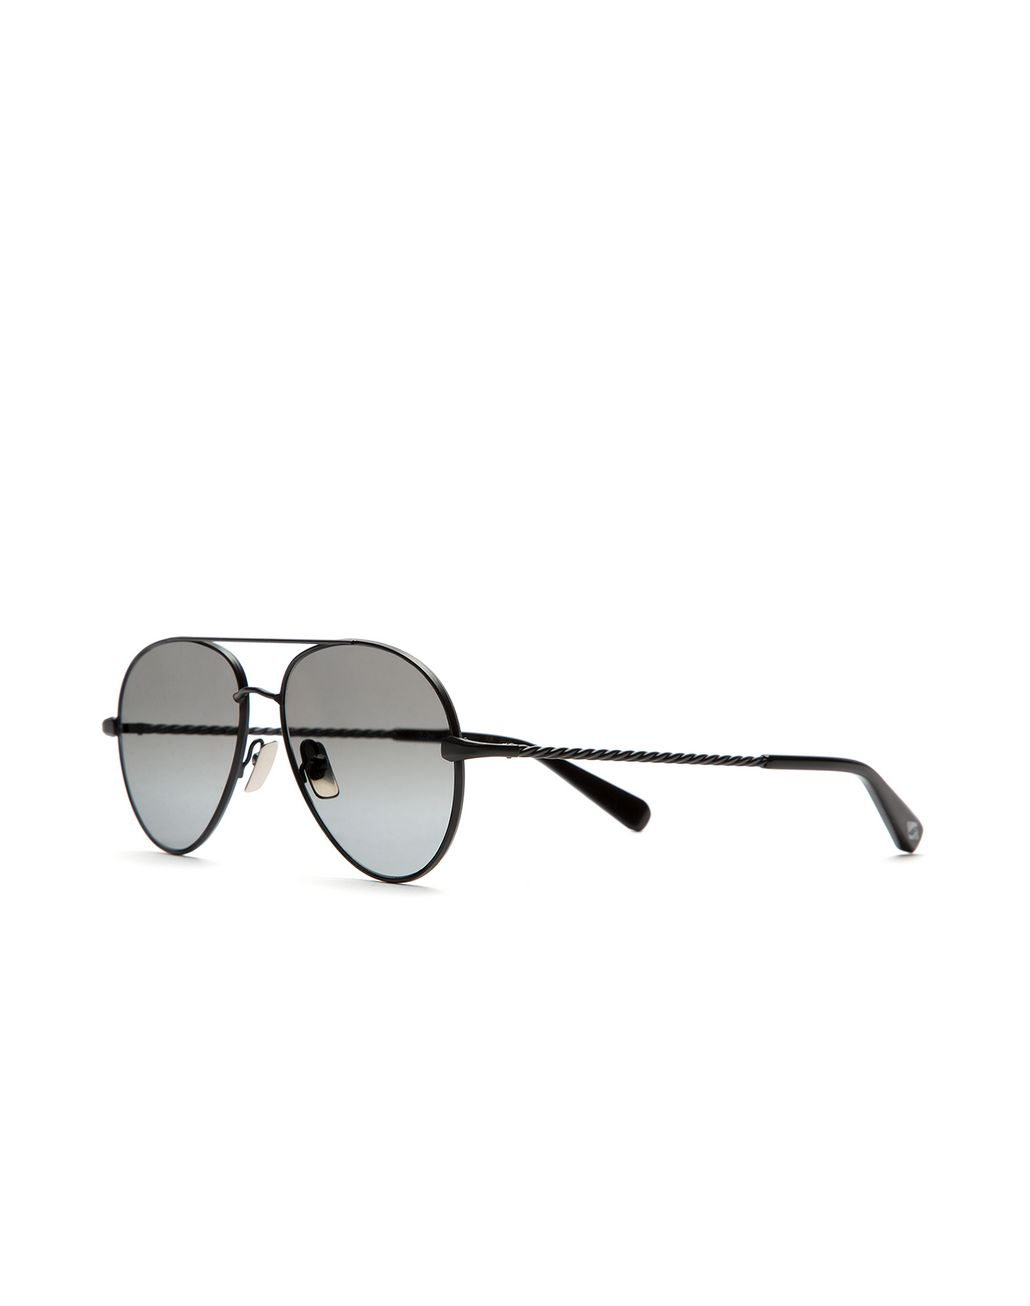 BRIONI Silver Black Aviator Sunglasses with Gray Lenses Sunglasses Man r